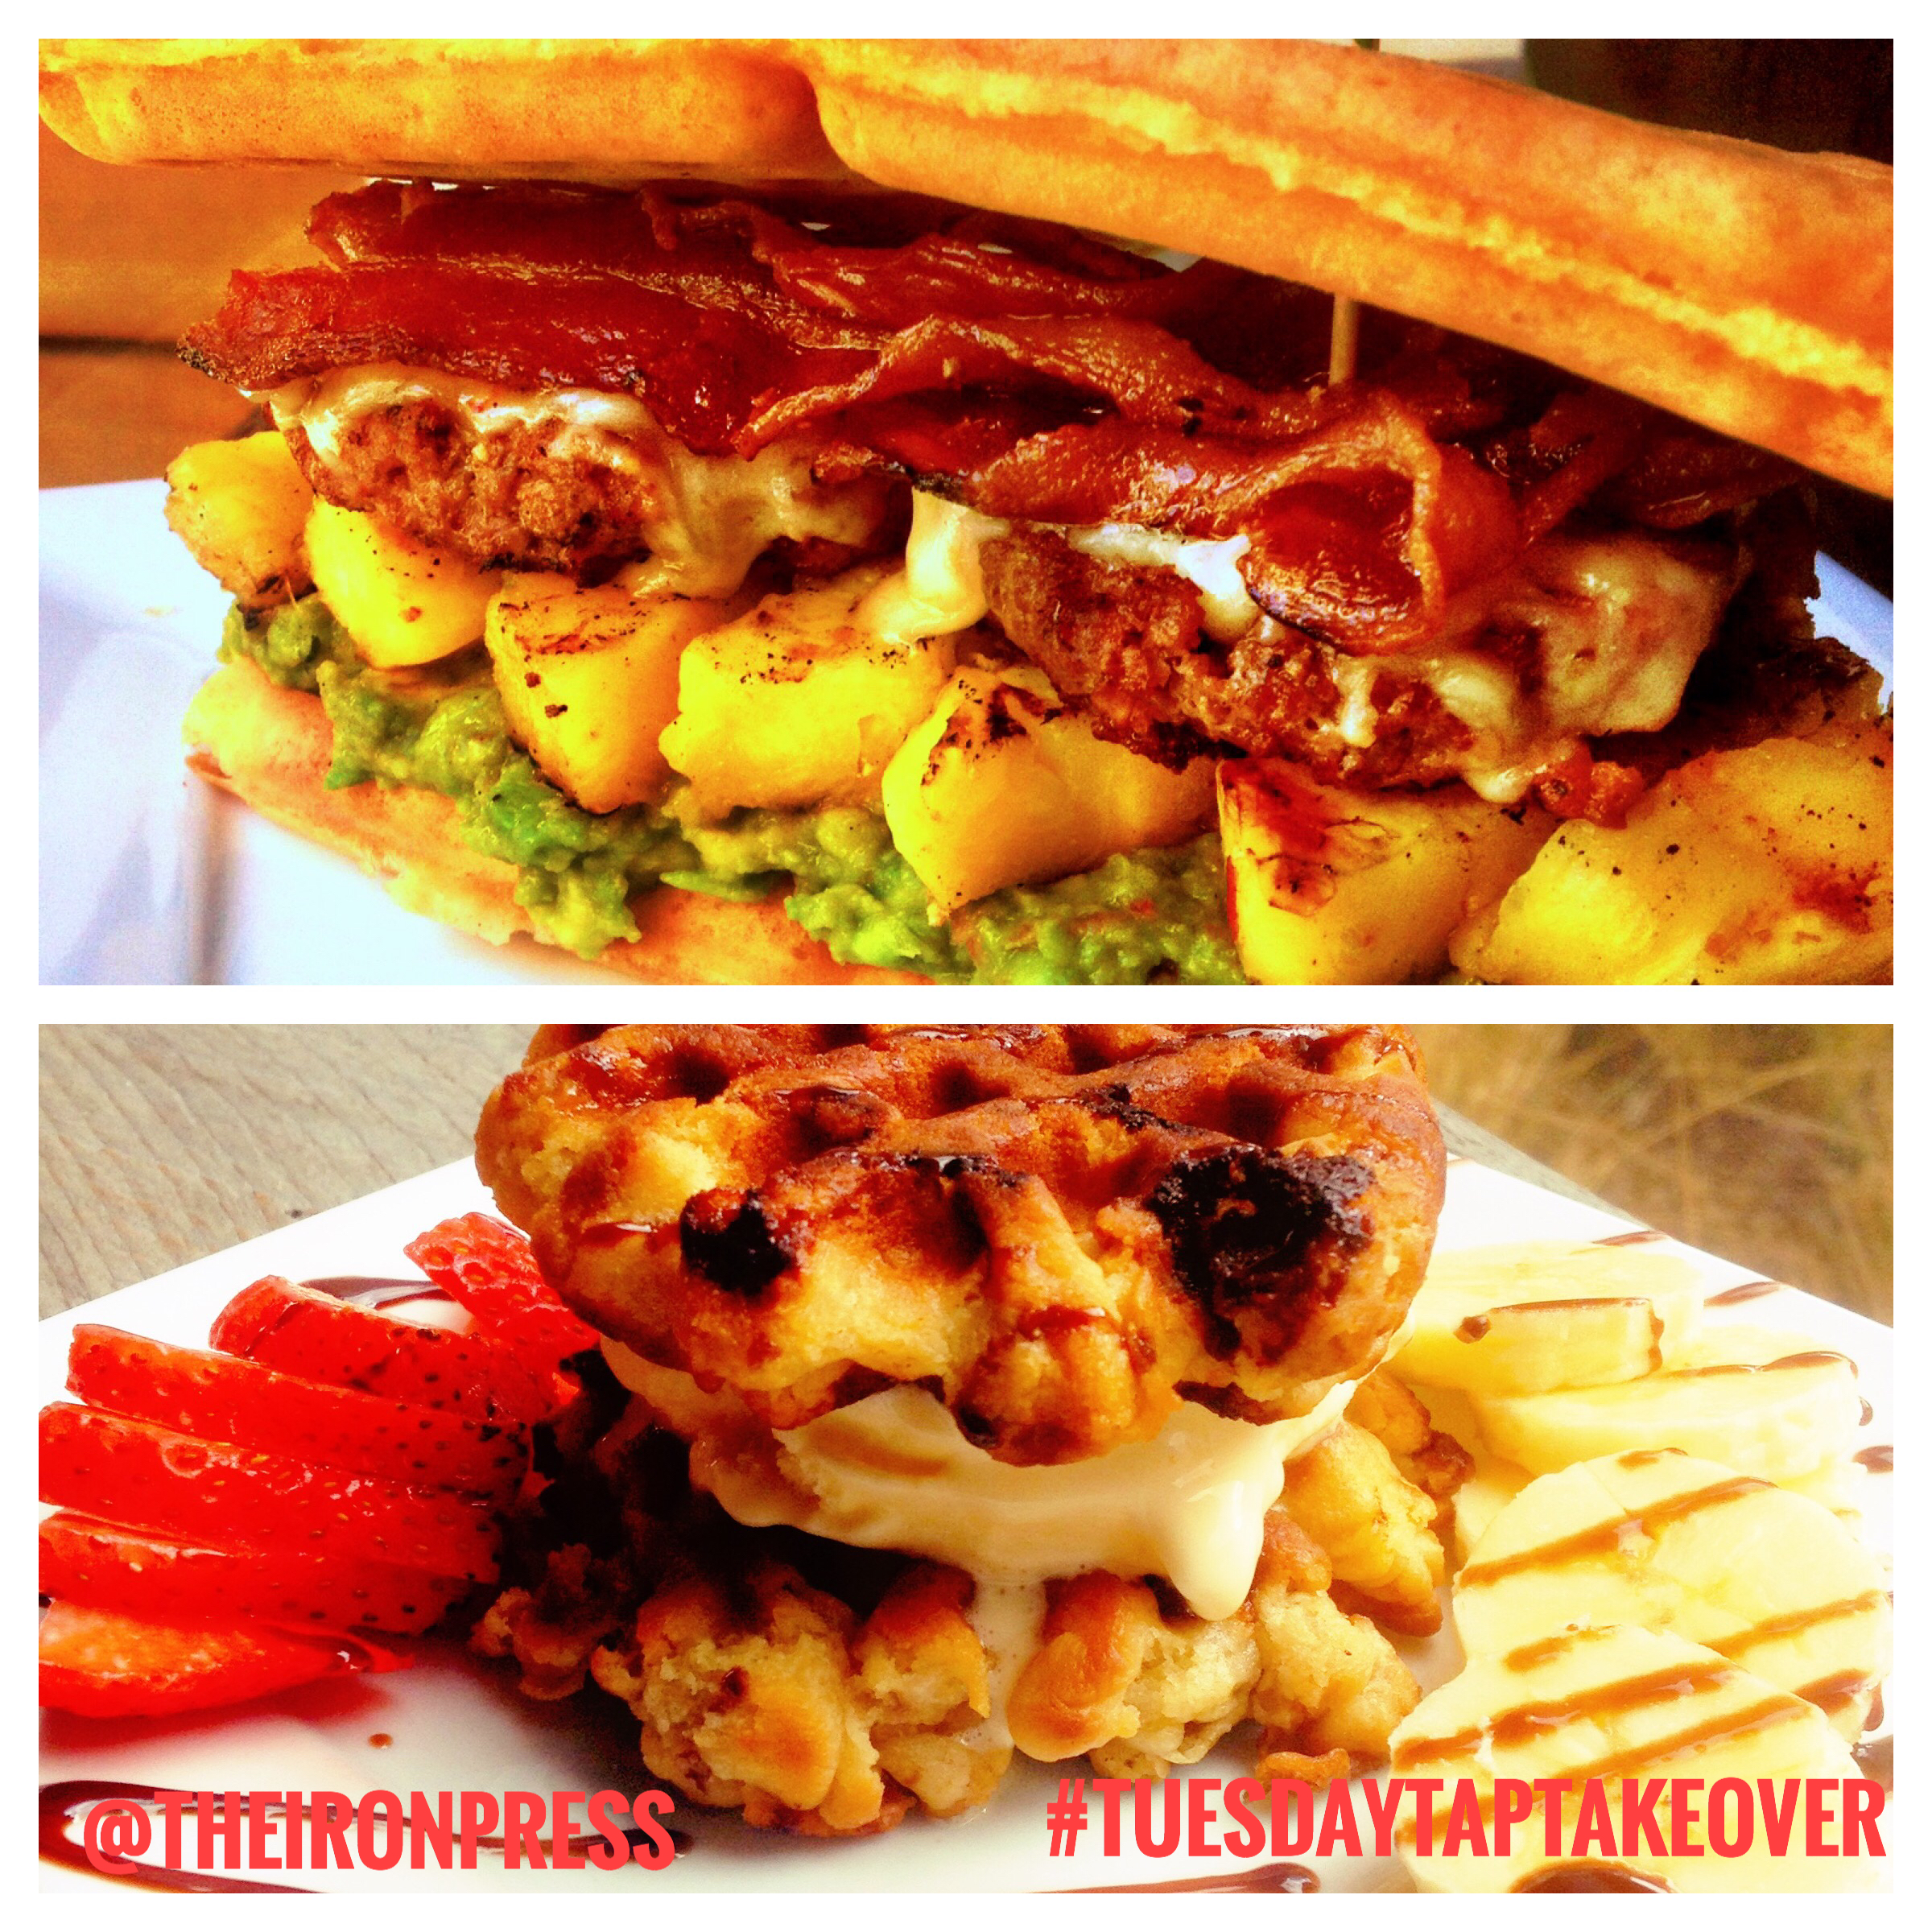 Hawaiian Waffle Burger + Fruity Wookie Sandwich